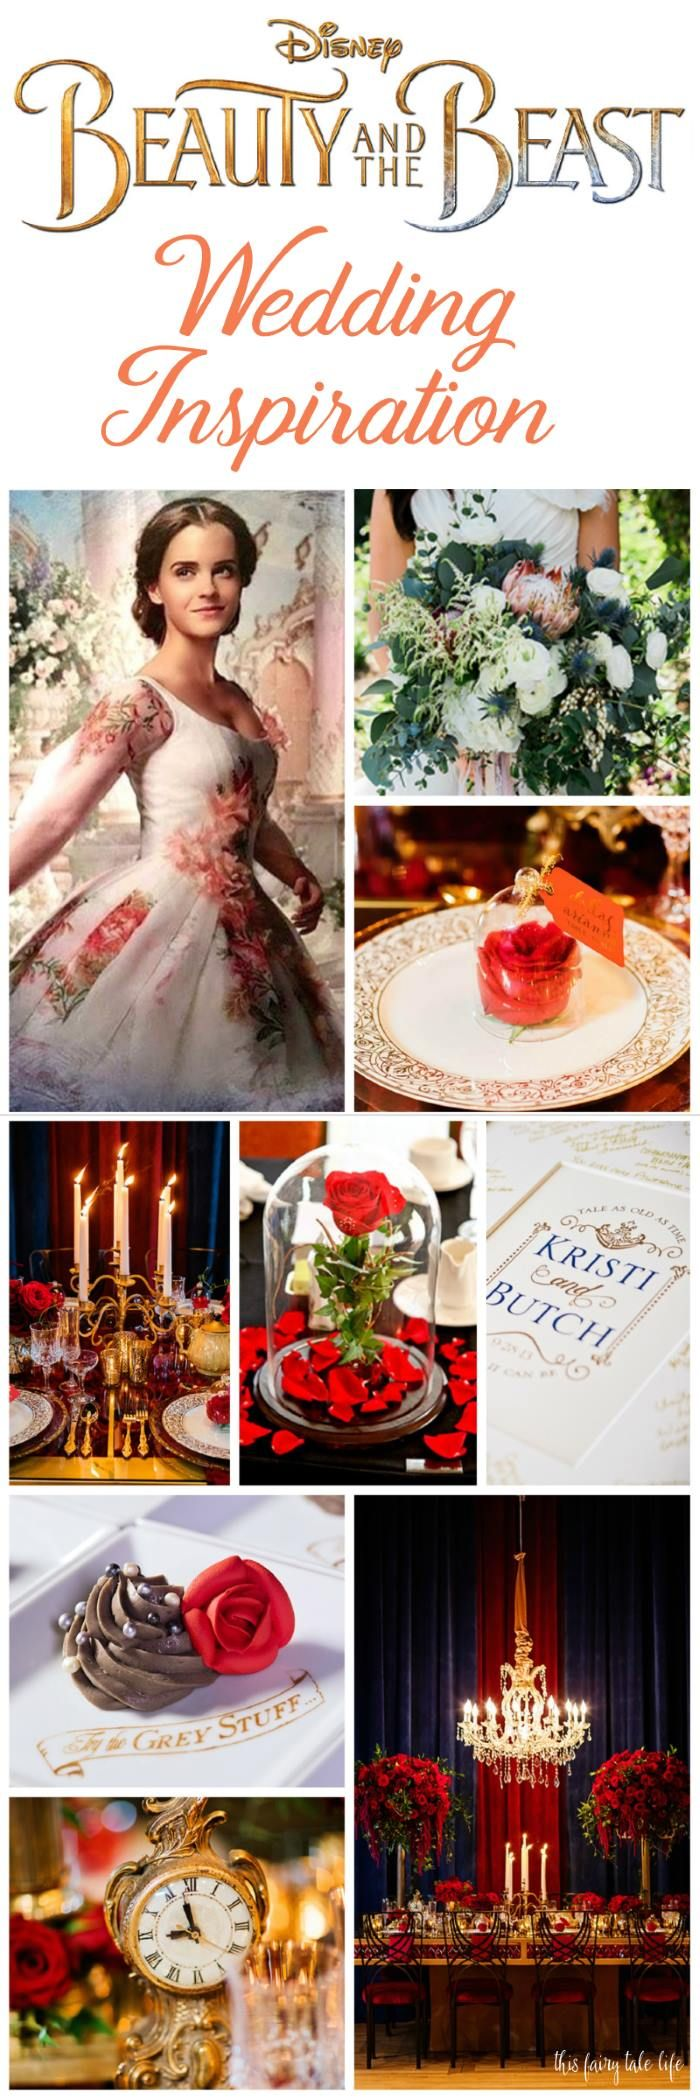 Live Action Beauty And The Beast Wedding Inspiration This Fairy Tale Life Beauty And Beast Wedding Disney Wedding Theme Beauty And The Beast Wedding Theme